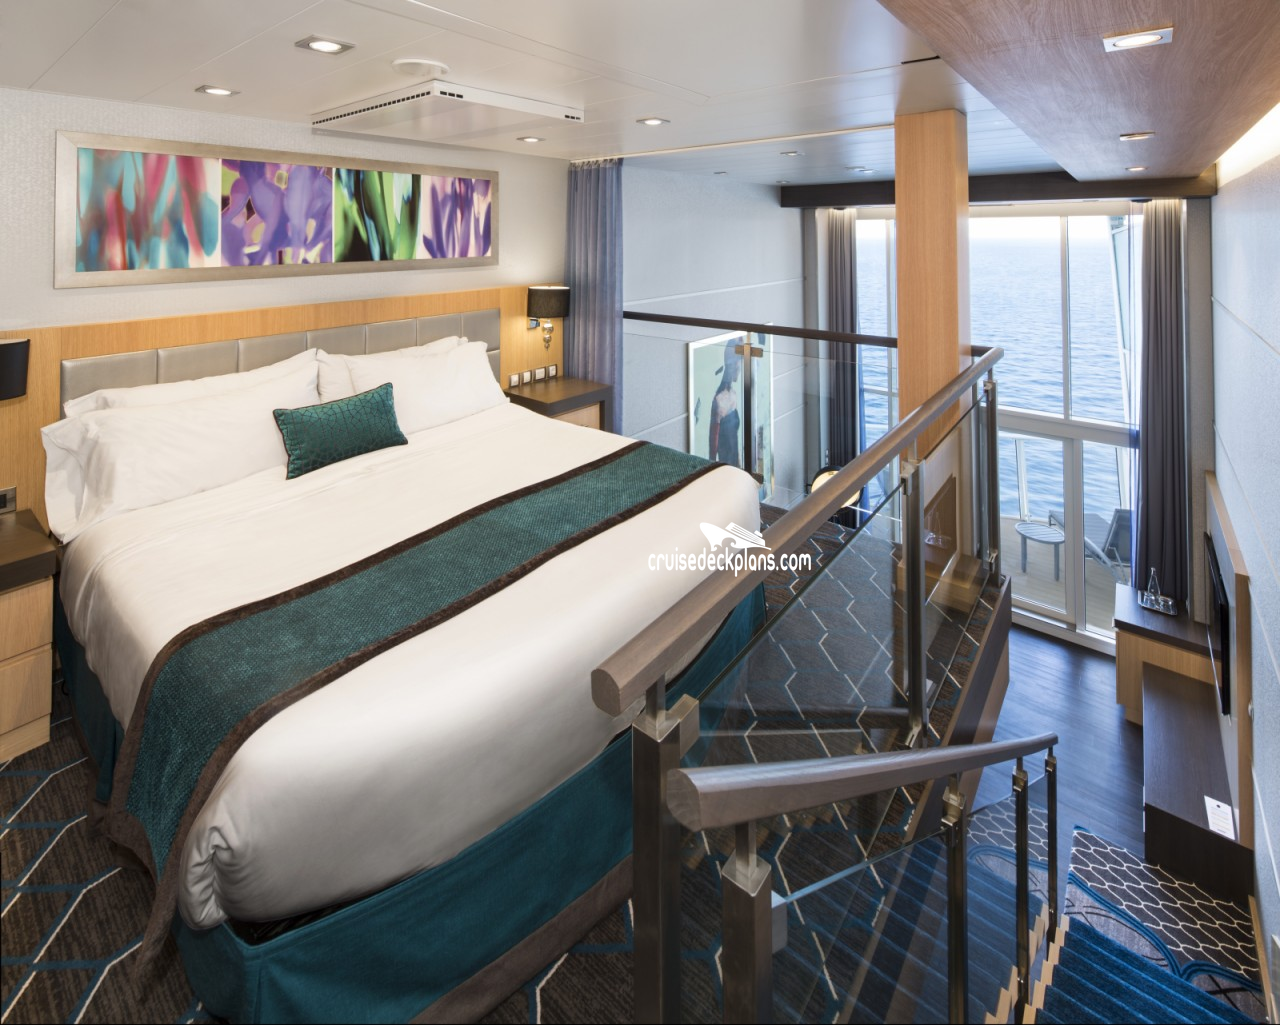 Harmony Of The Seas Deck Plans Diagrams Pictures Video